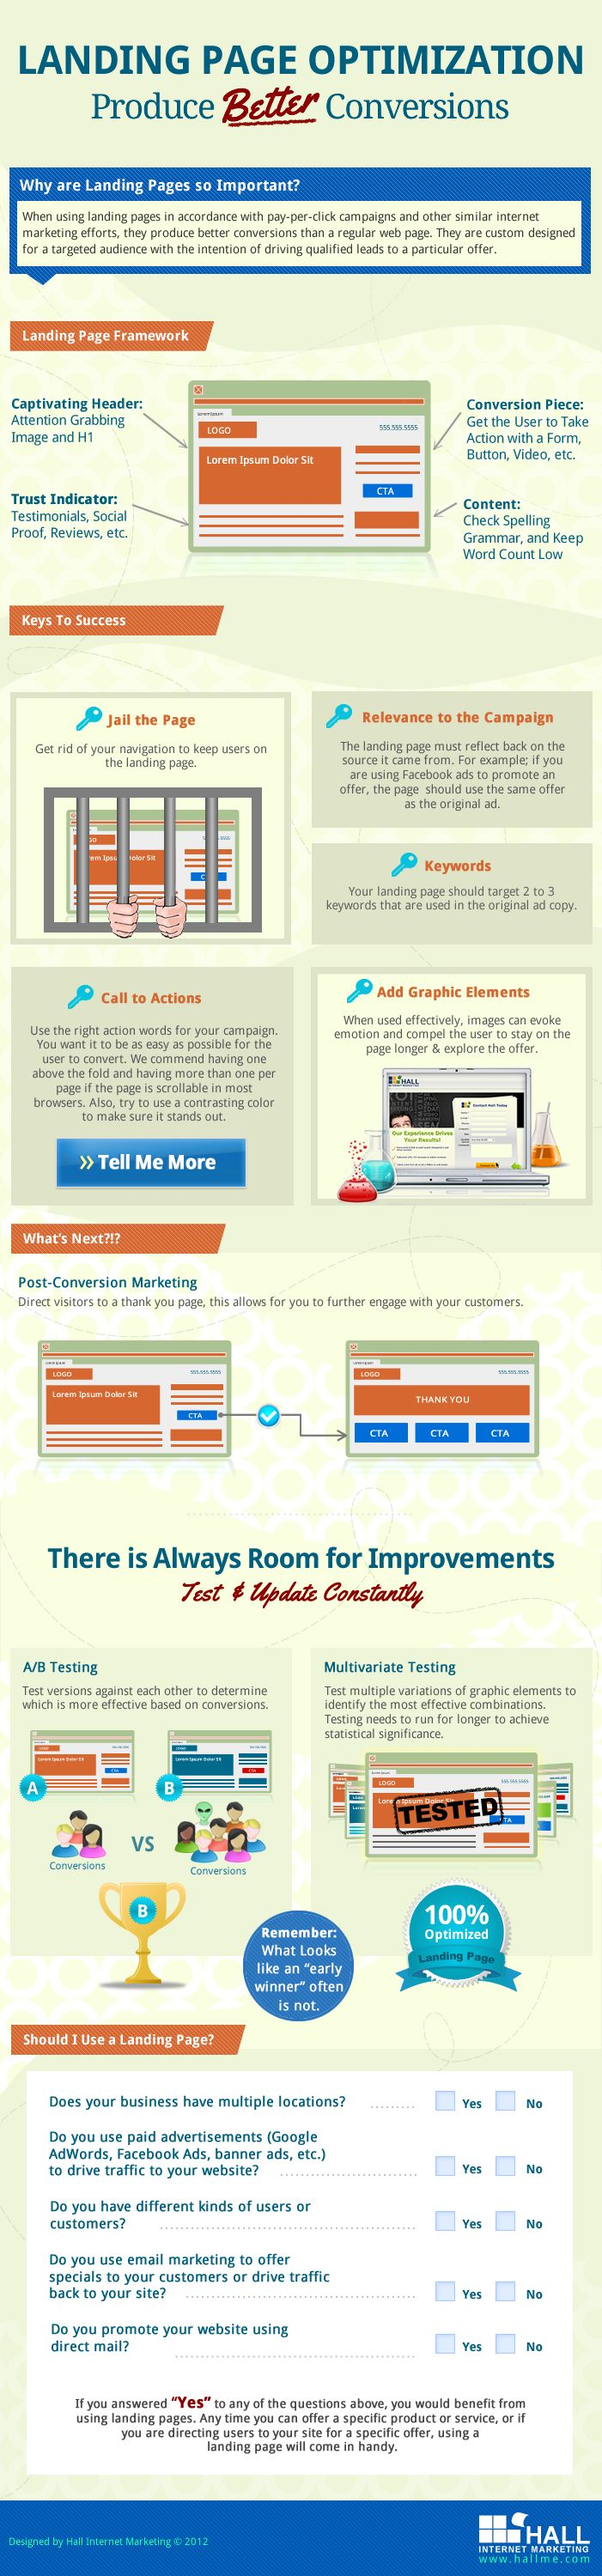 Creating landing pages can be one of the best ways to get more conversions and leads from your marketing efforts. A good landing page should get all o